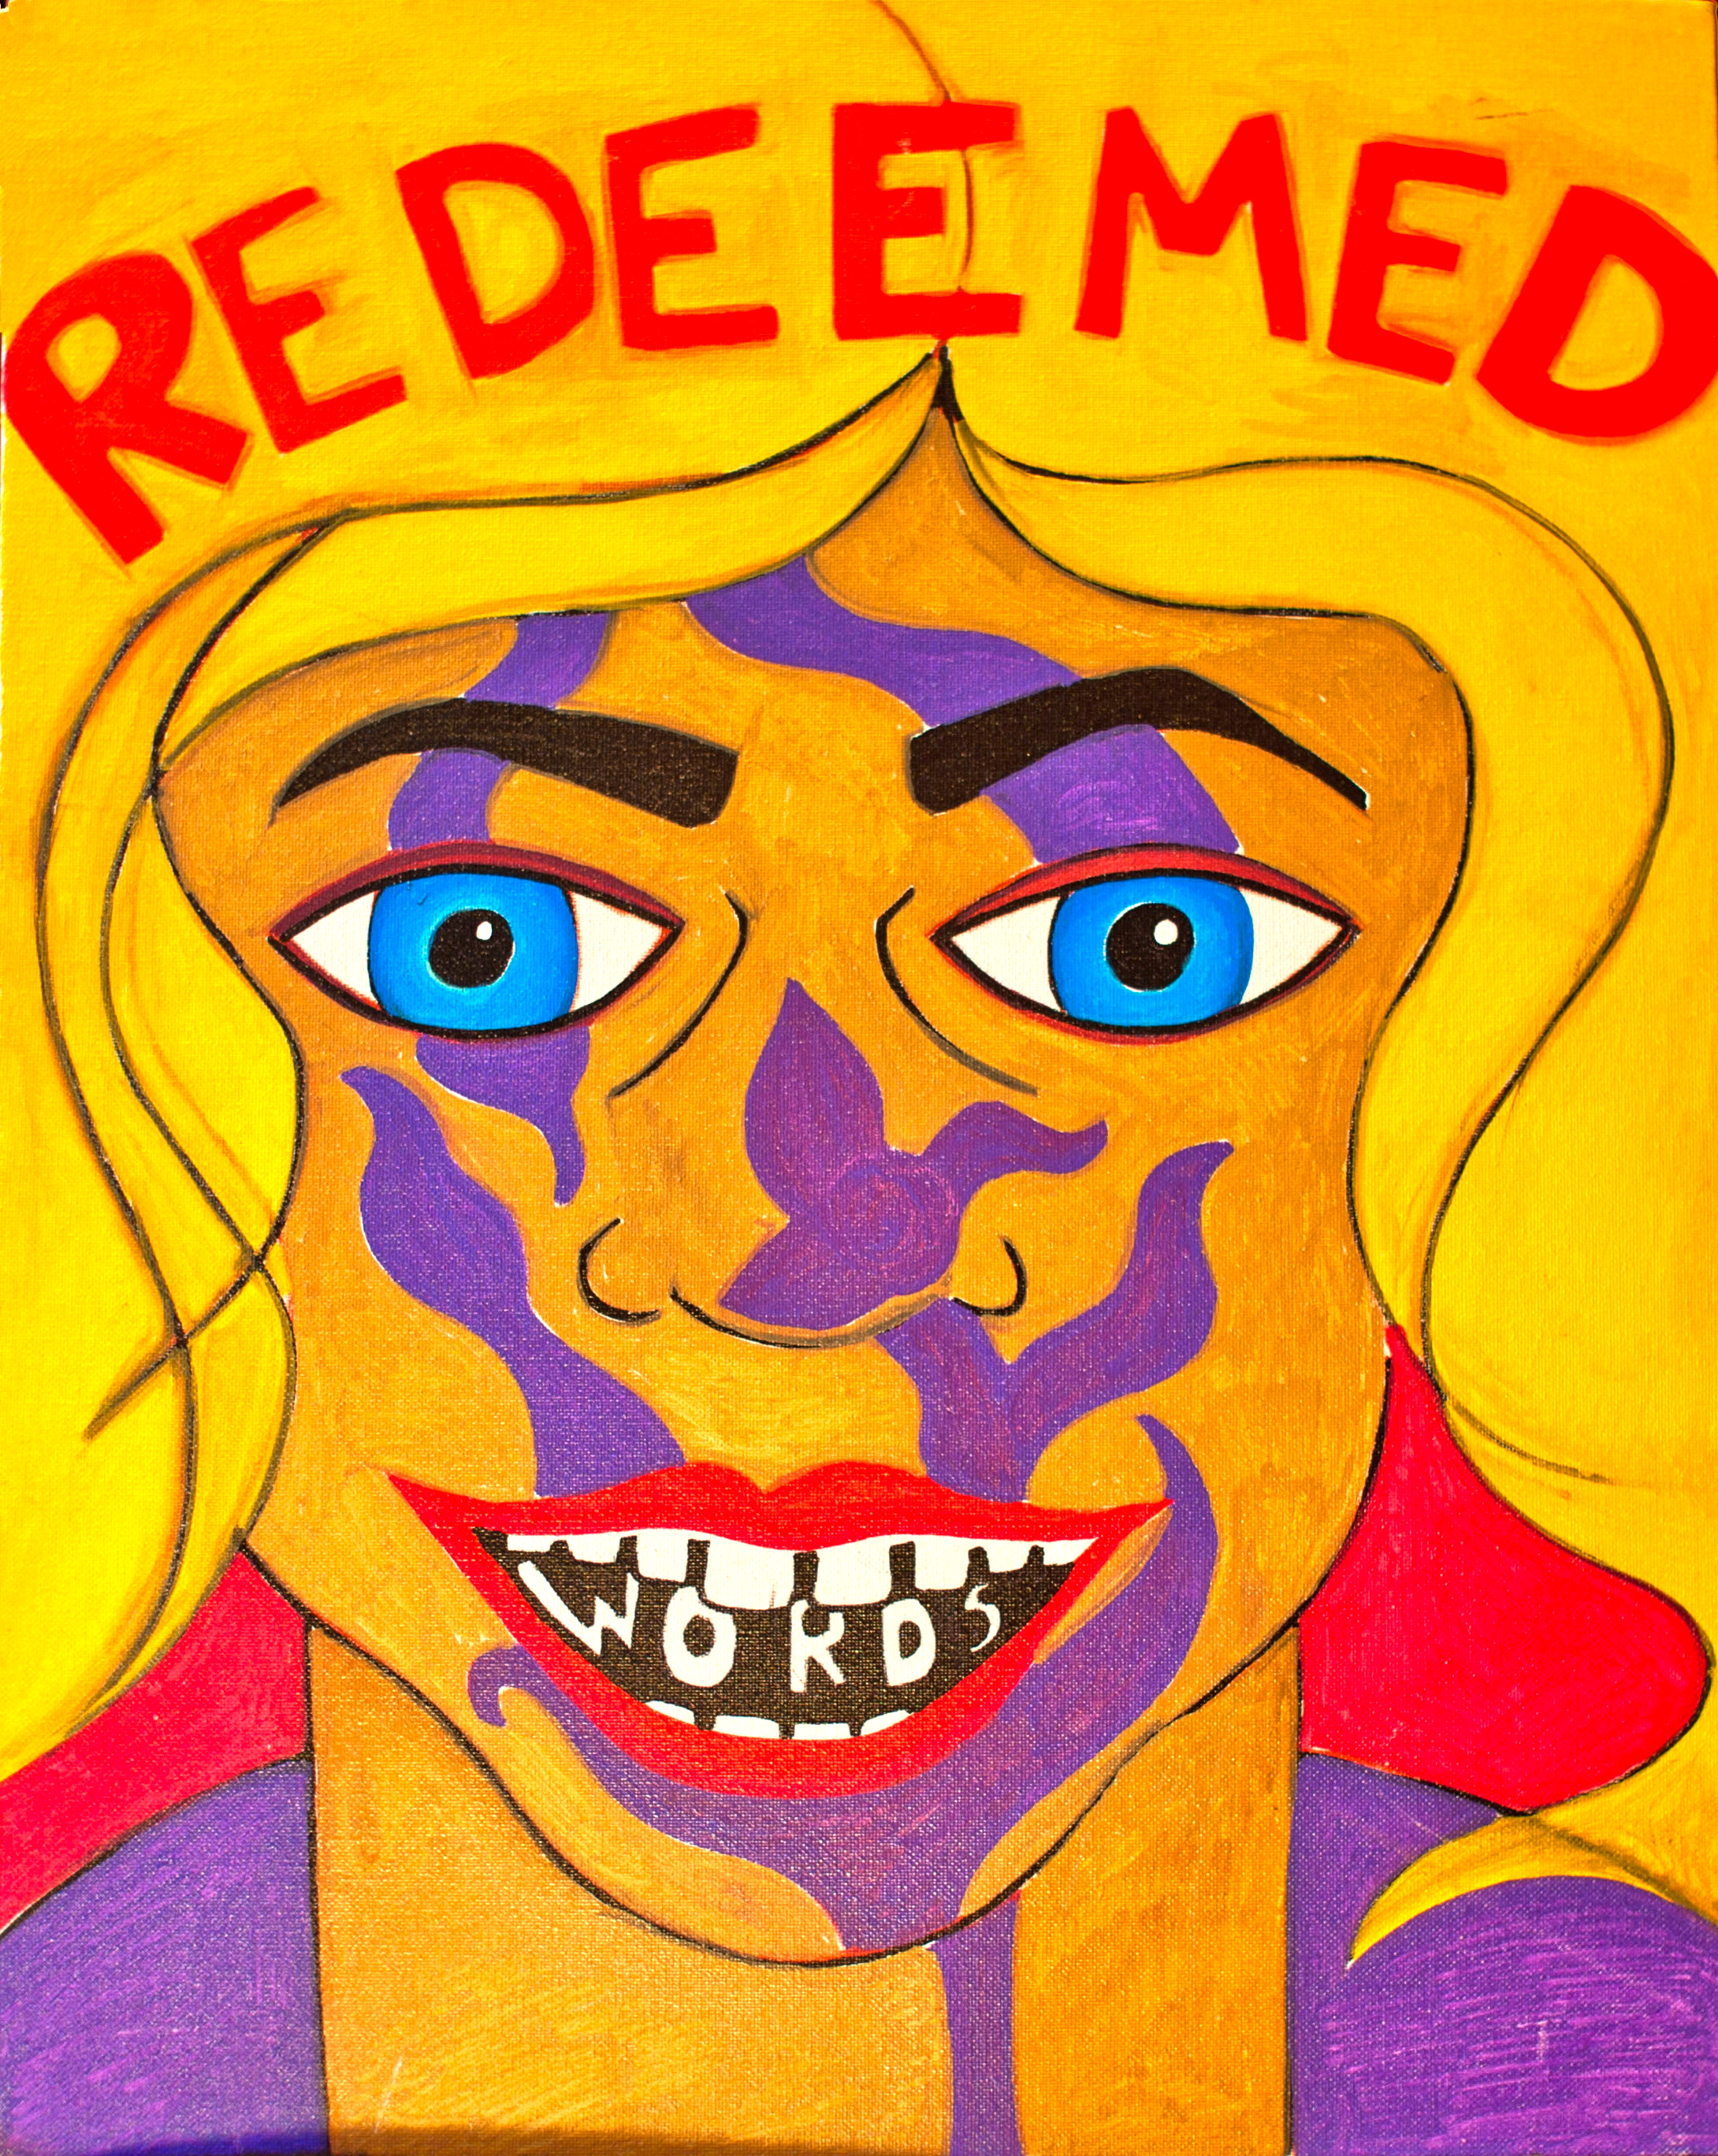 Redeemed by Brette Sydney Tell